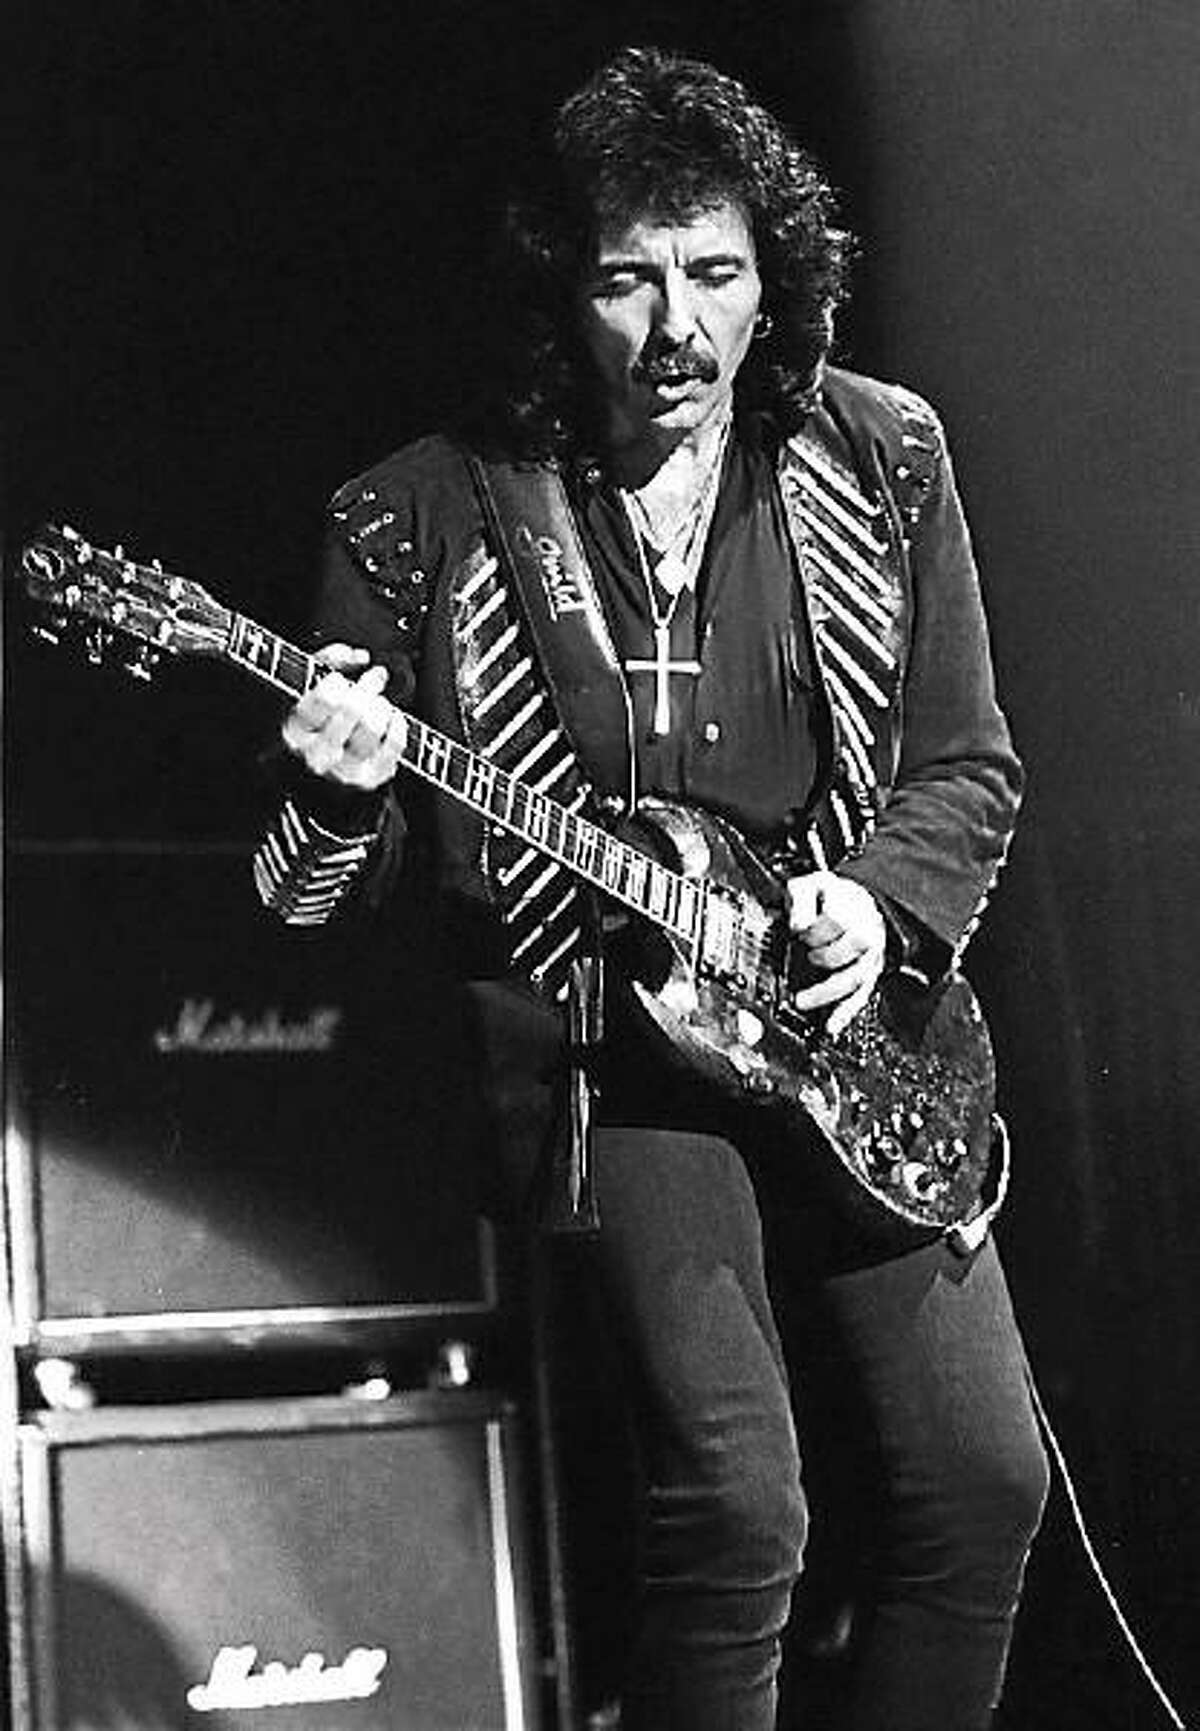 """Black Sabbath guitarist Tony Iommi is shown performing during a """"live"""" concert appearance."""